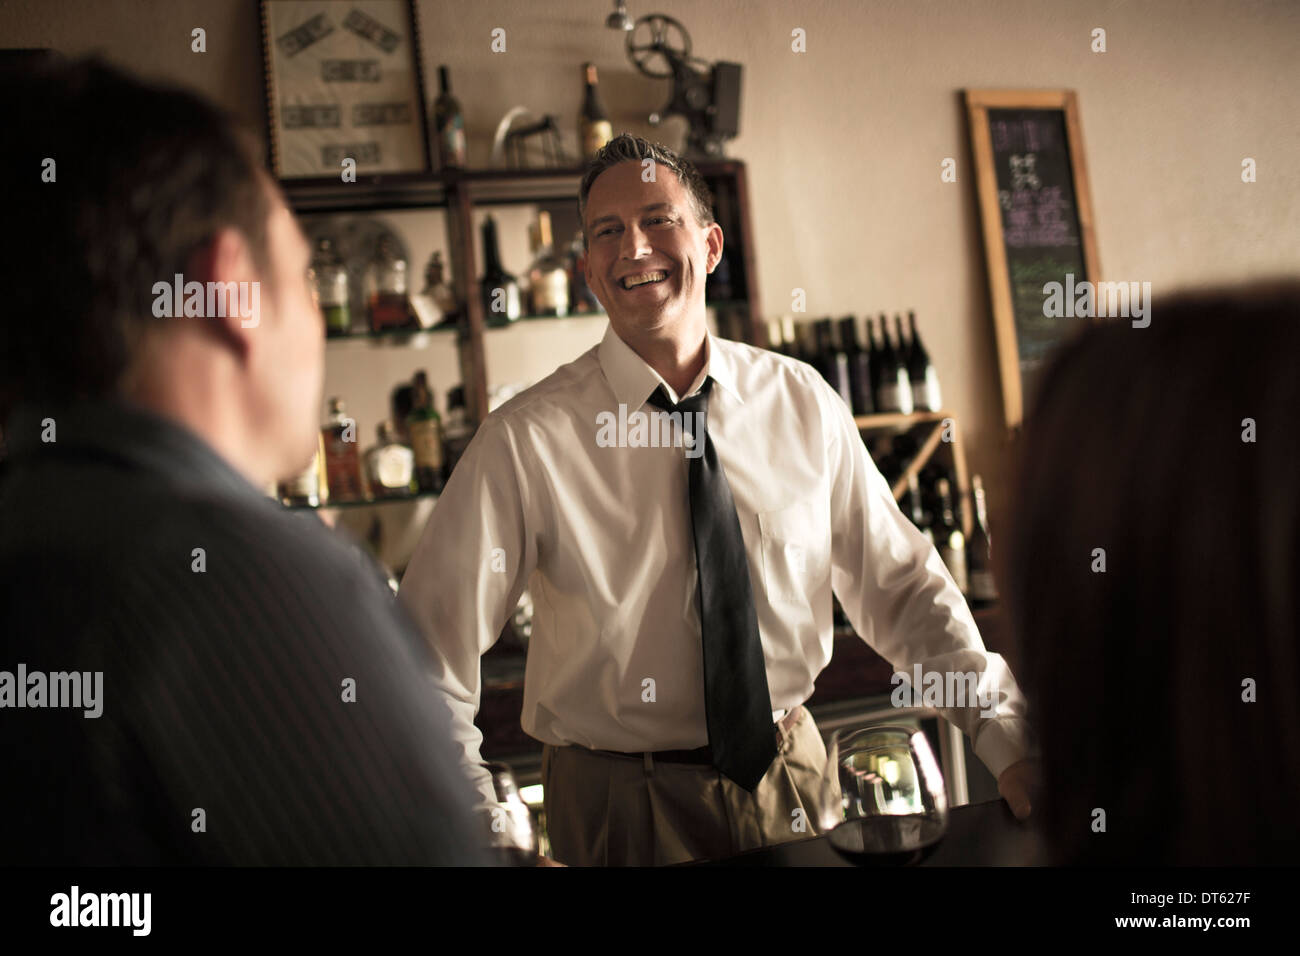 Bartender chatting with customers in wine bar - Stock Image